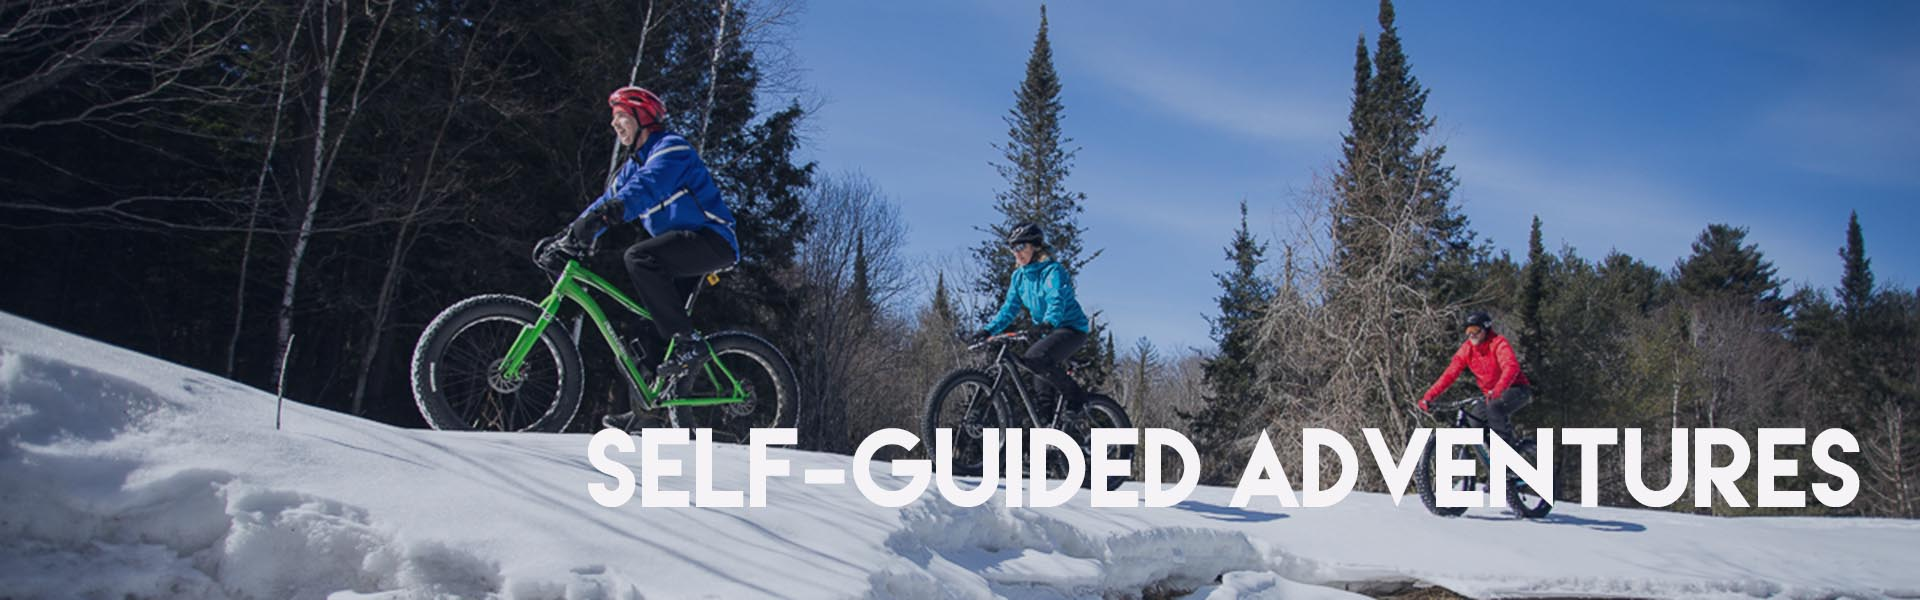 Self-Guided Winter Adventures